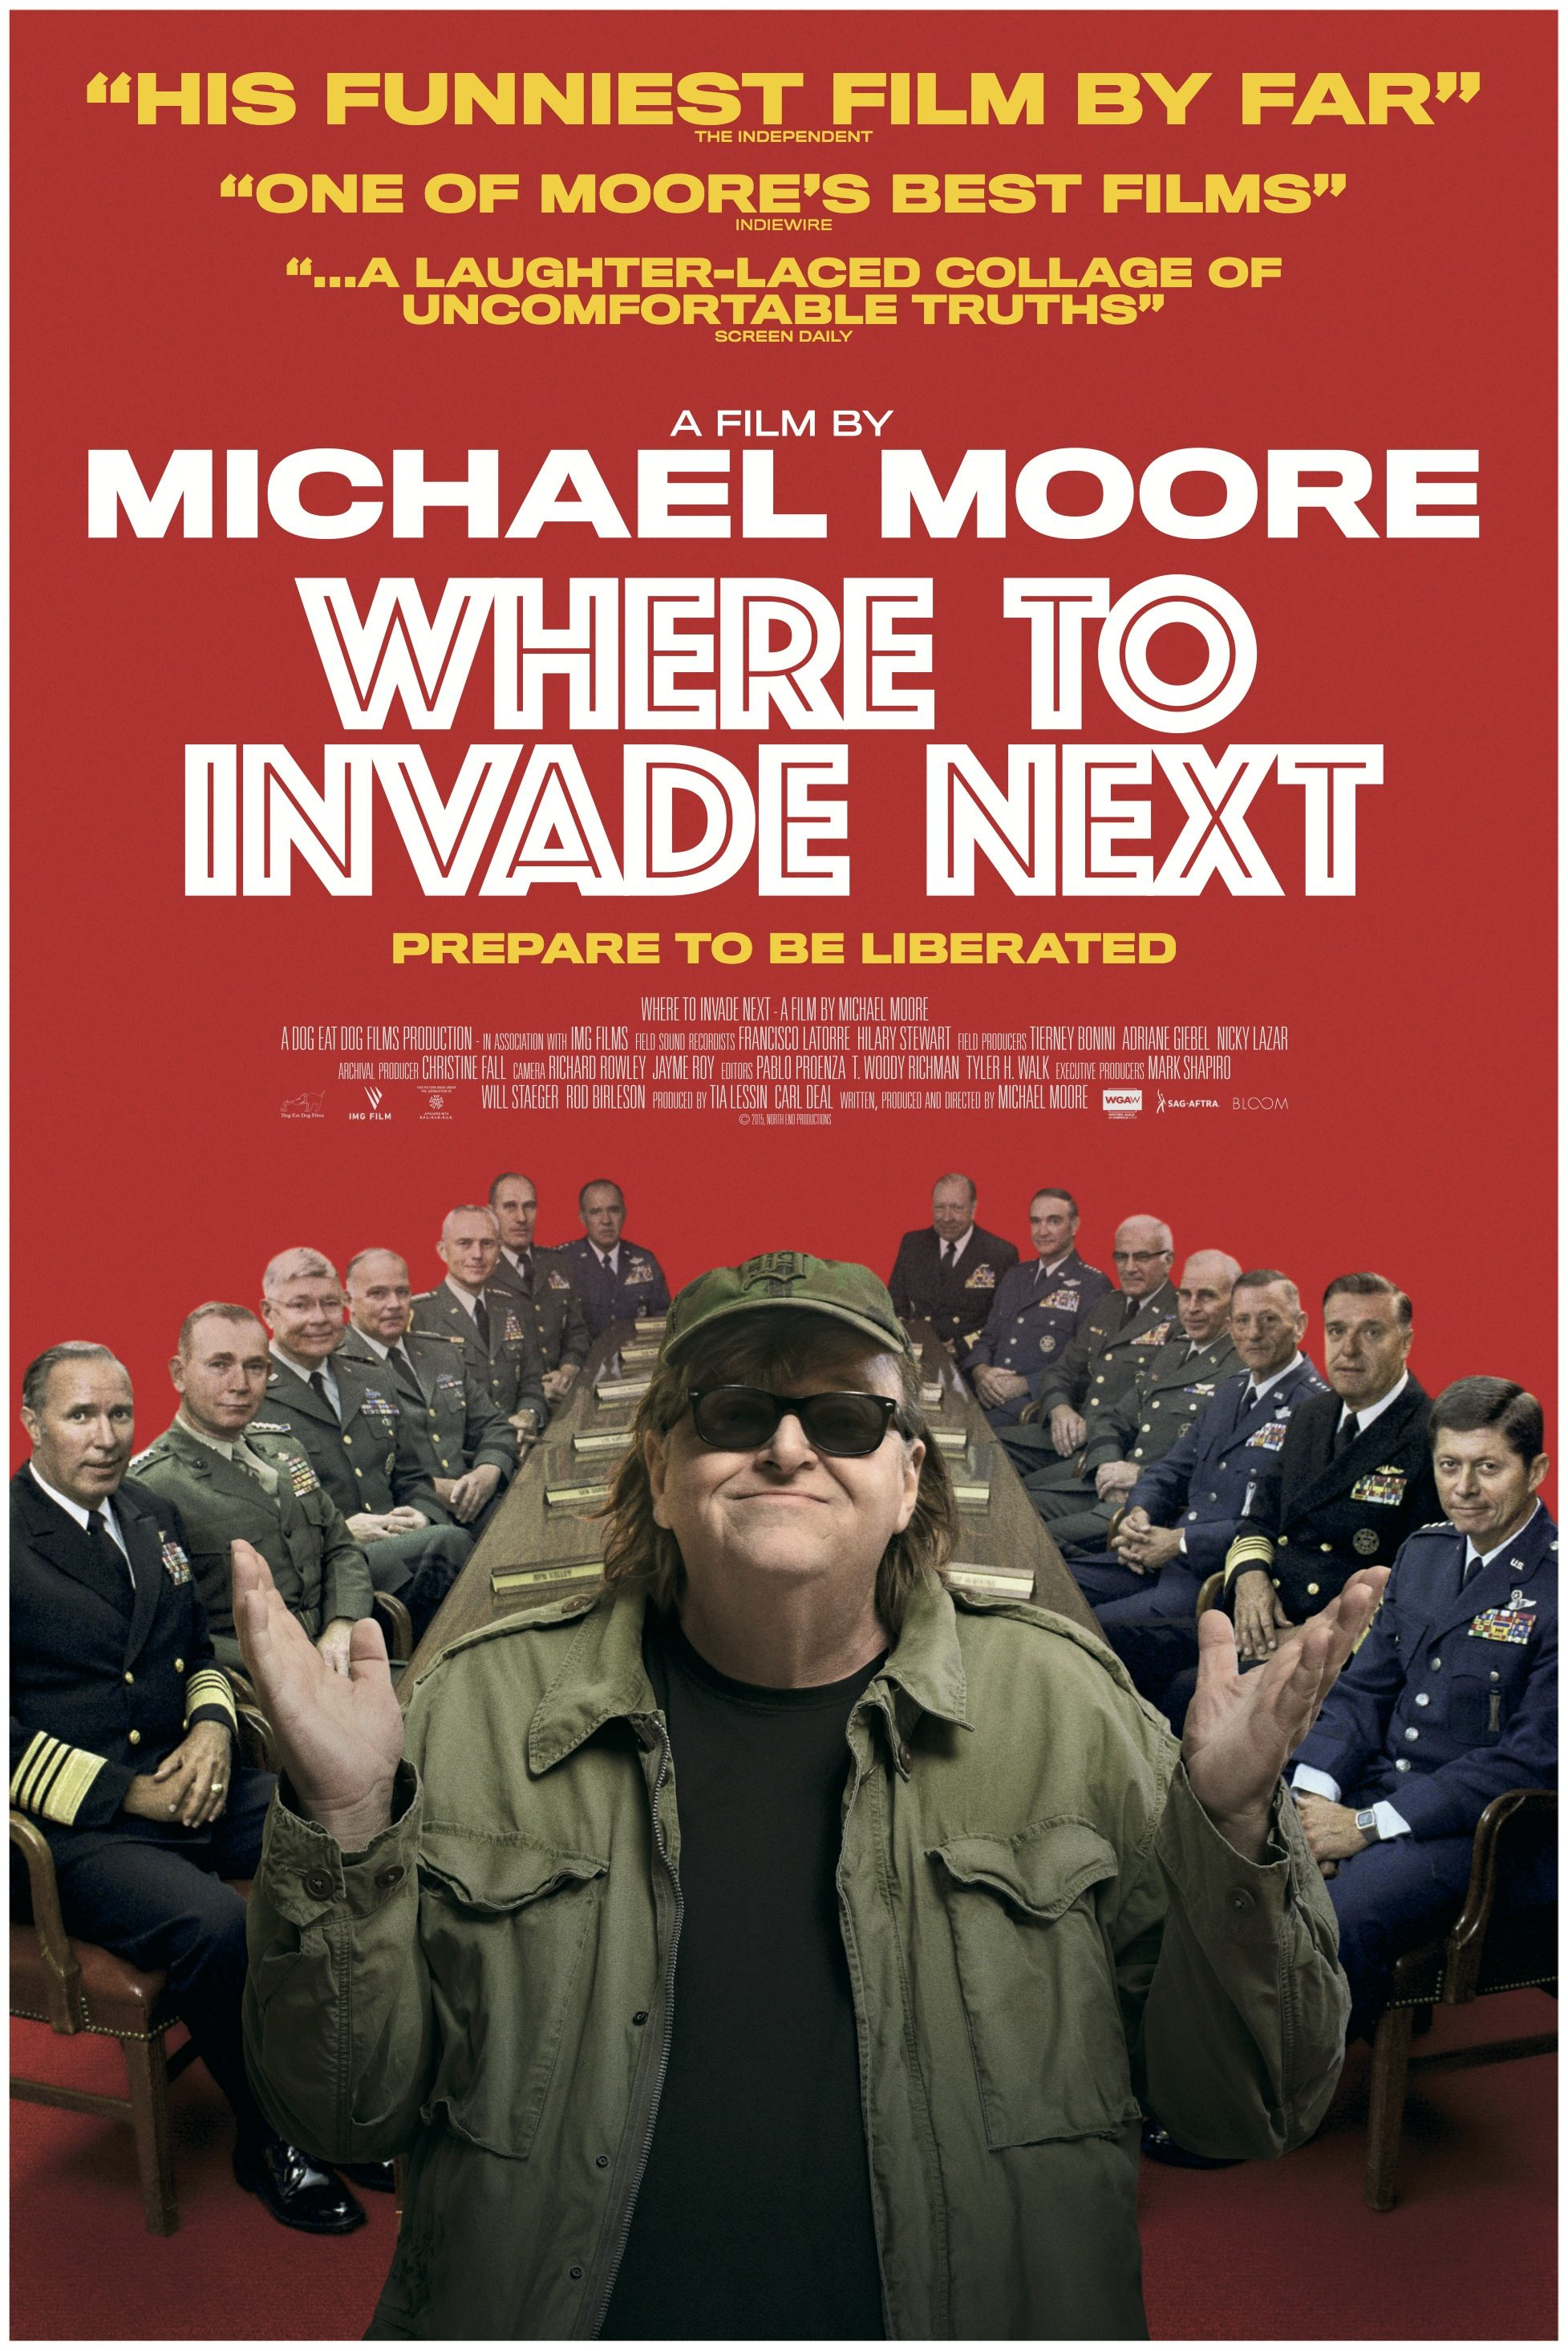 https://www.transcend.org/tms/wp-content/uploads/2016/02/where-to-invade-next-michael-Moore2.jpg